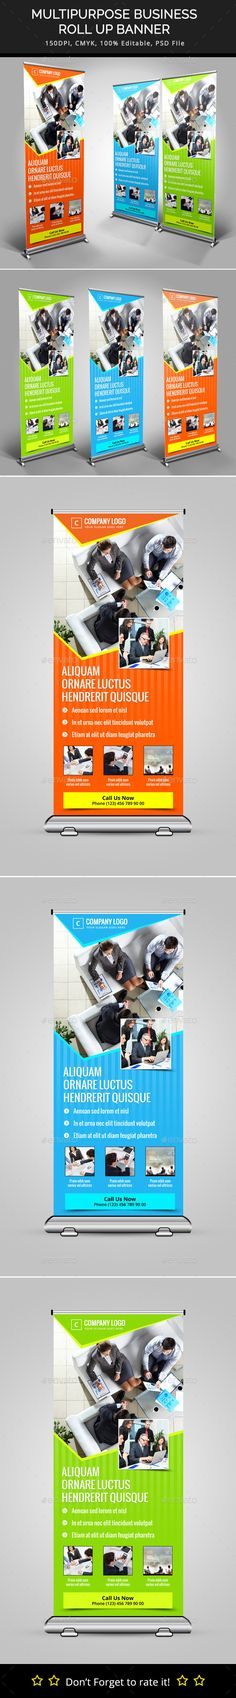 photography roll up banner rollup banner banner template and banners